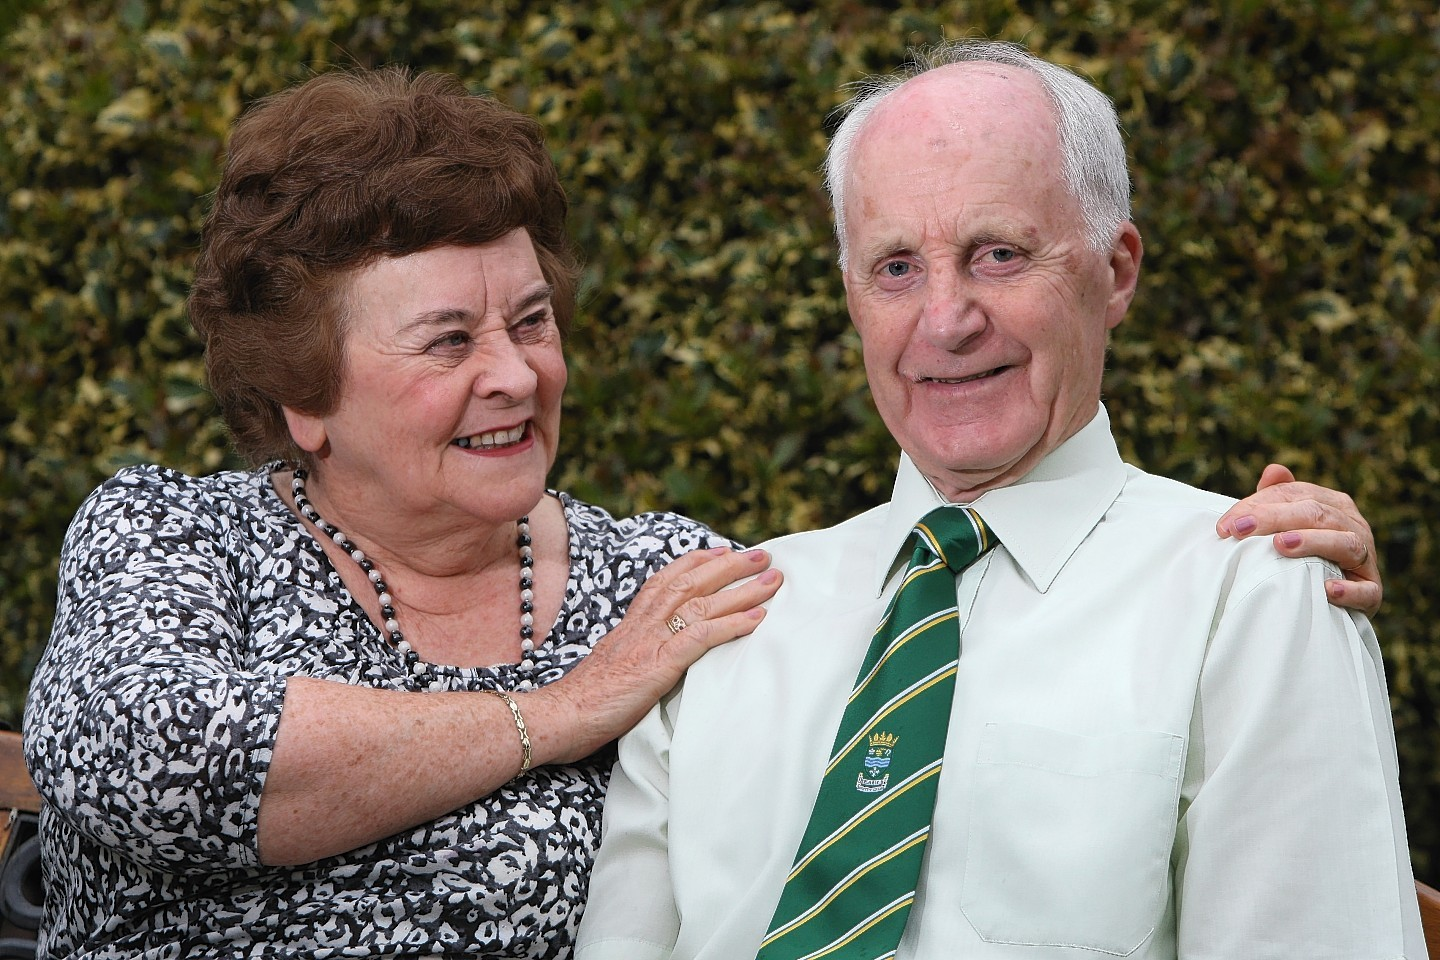 Gerry Grant MBE, co-founder of Highland Cross, with his wife Sheila. Picture: Andrew Smith